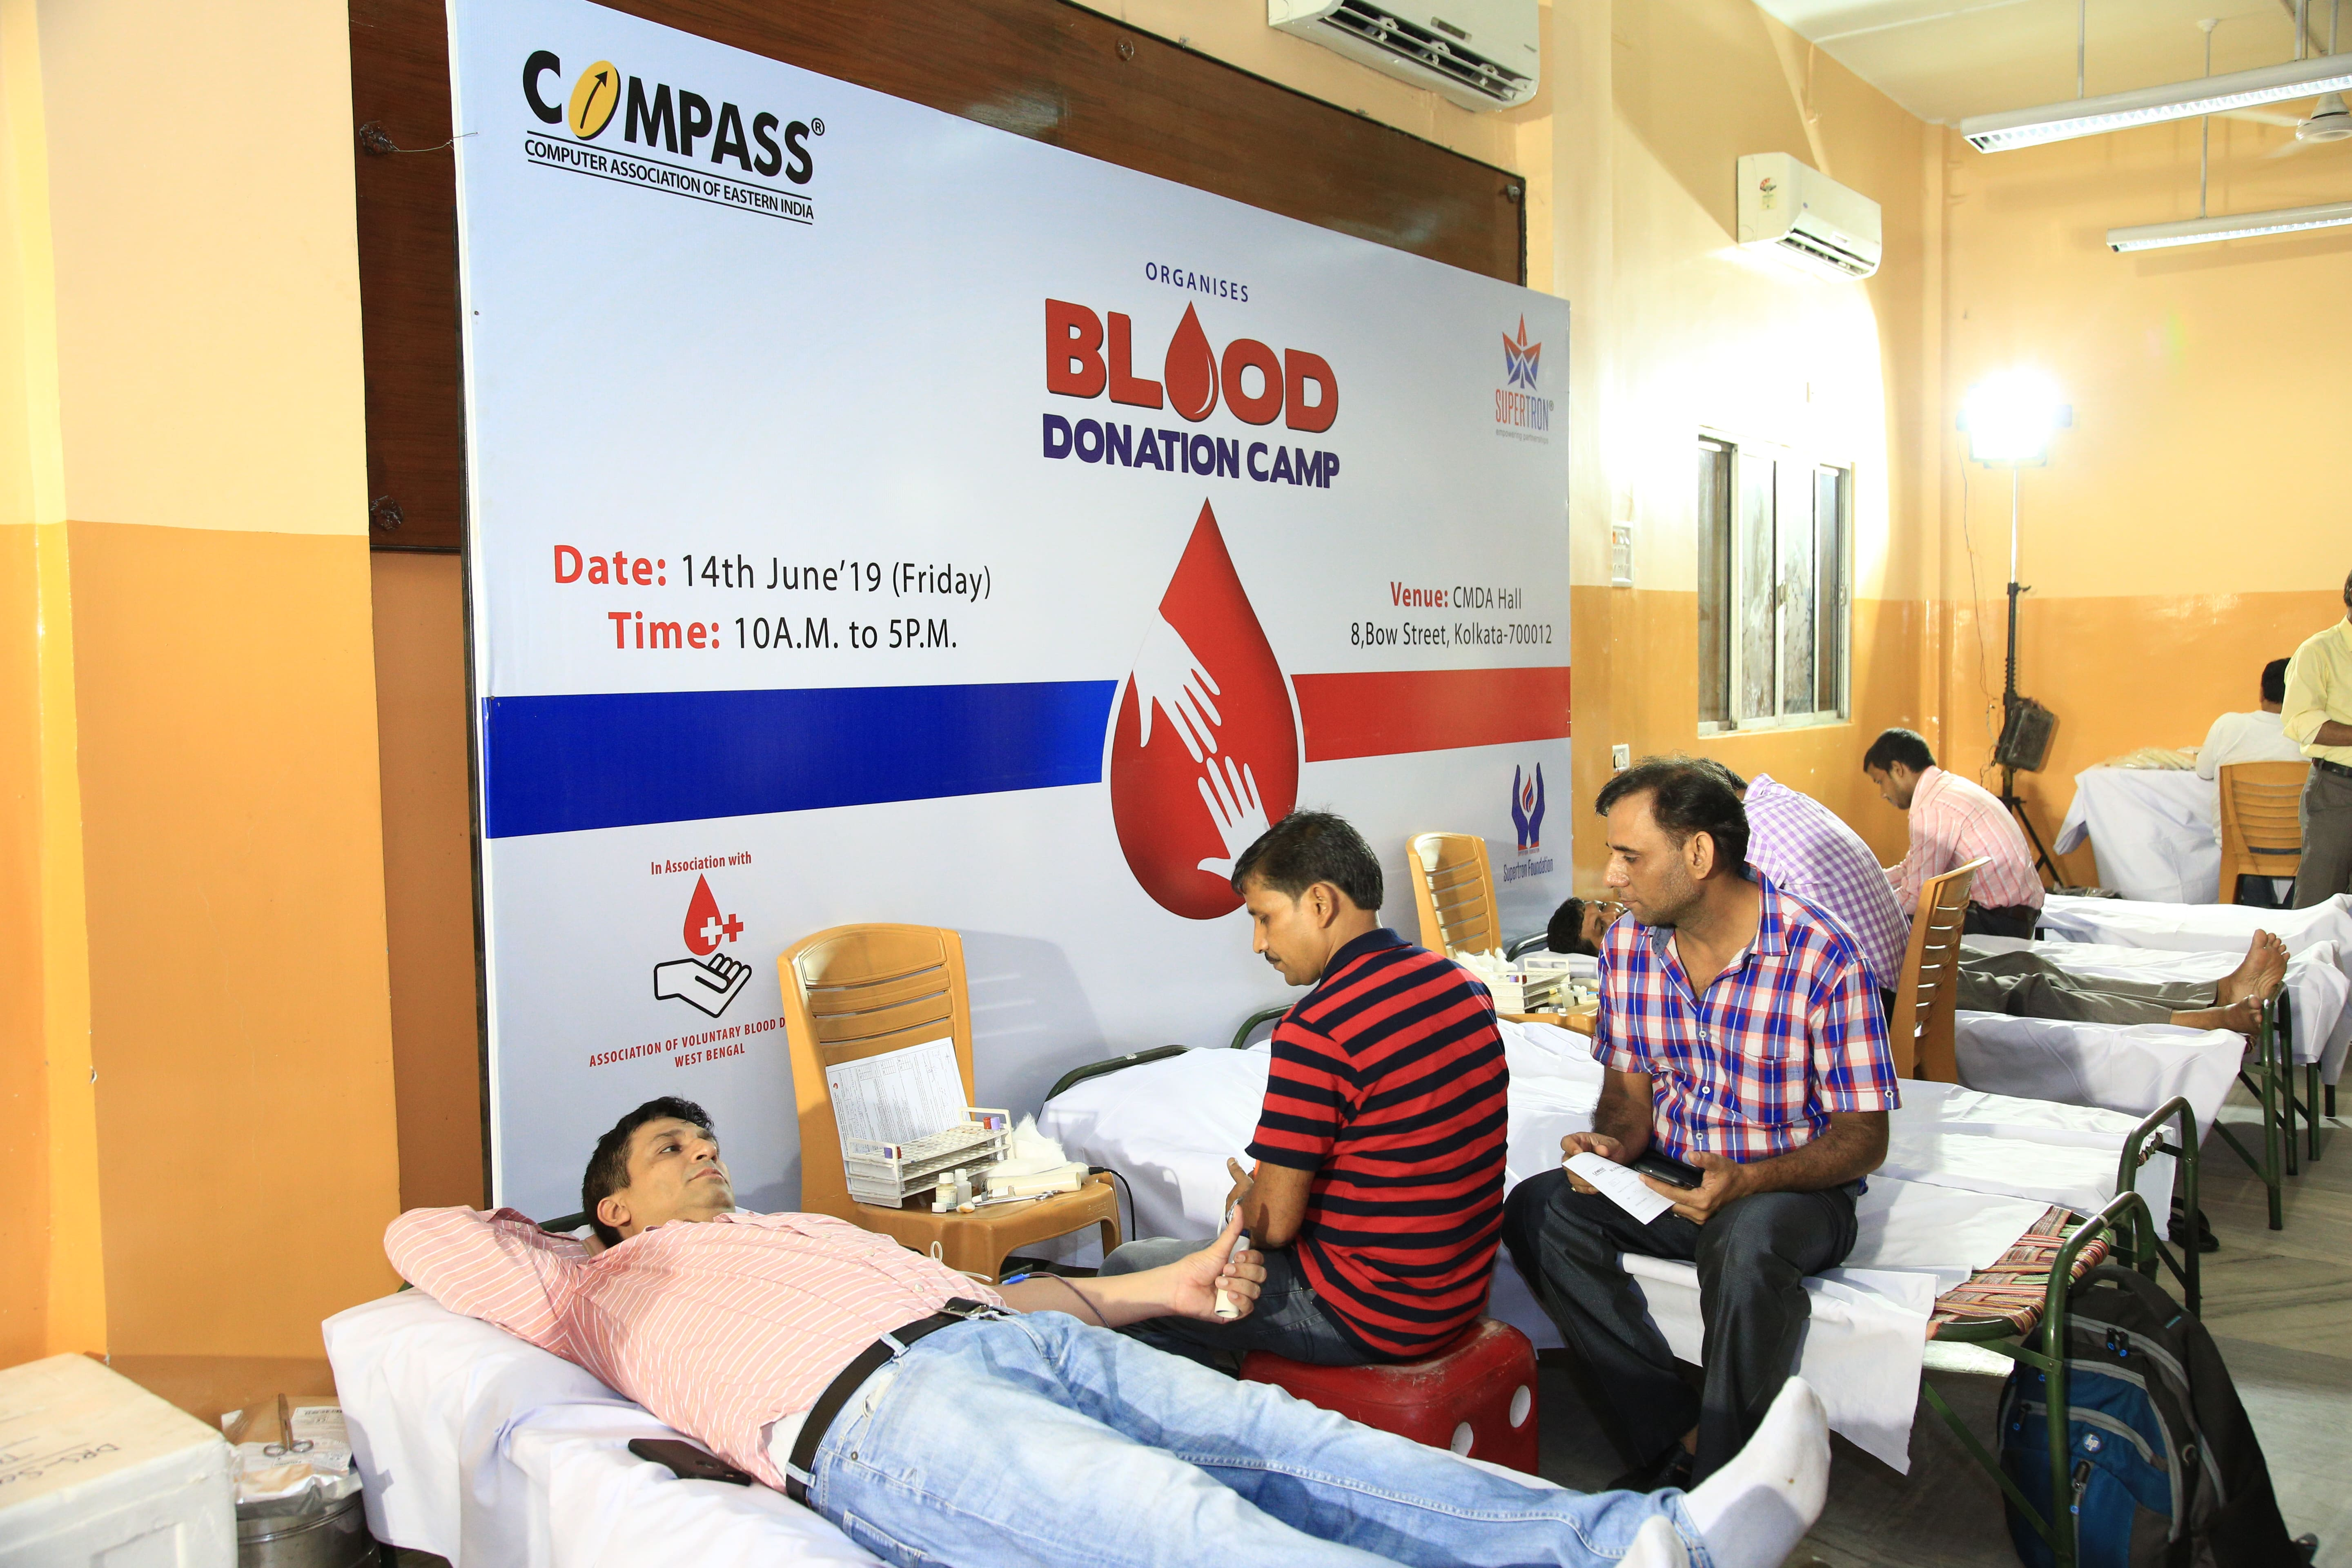 https://www.supertronindia.com/wp-content/uploads/2019/06/Blood-Donation-Camp-3-min.jpg